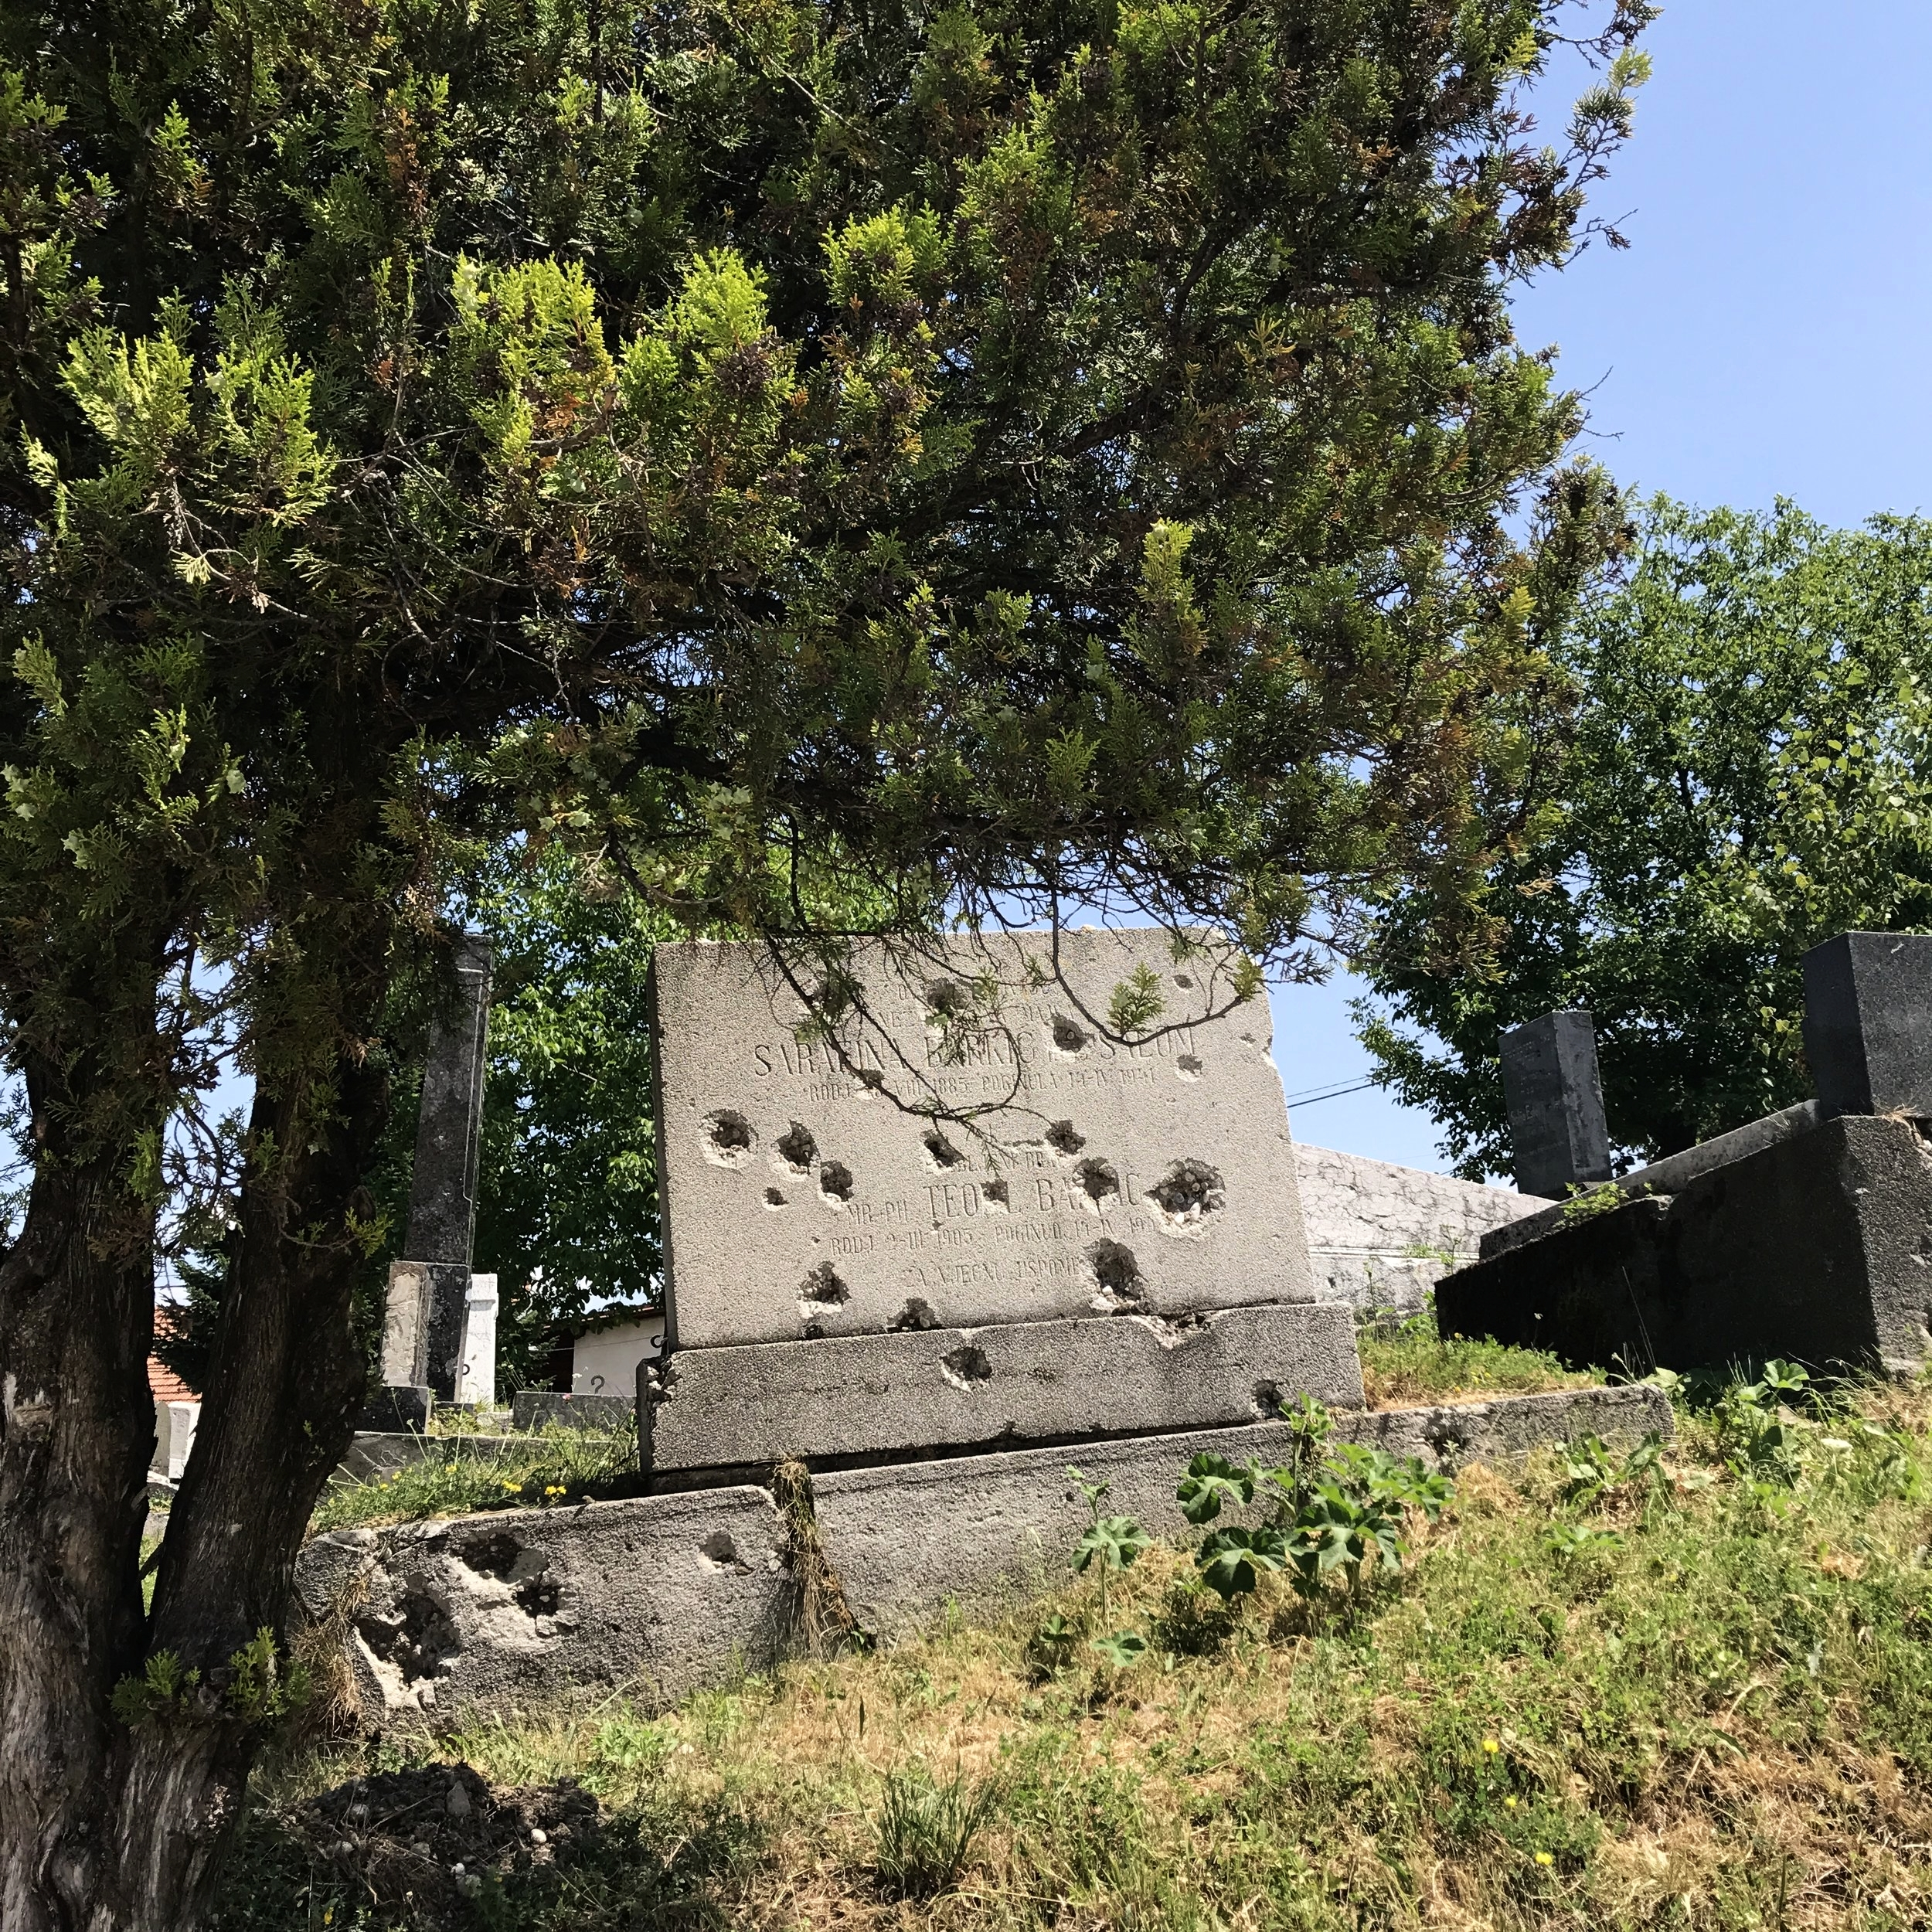 Bosnian Serb forces used Sarajevo's elevated Jewish cemetery, the second largest in Europe, to fire onto the people of Sarajevo during the siege.